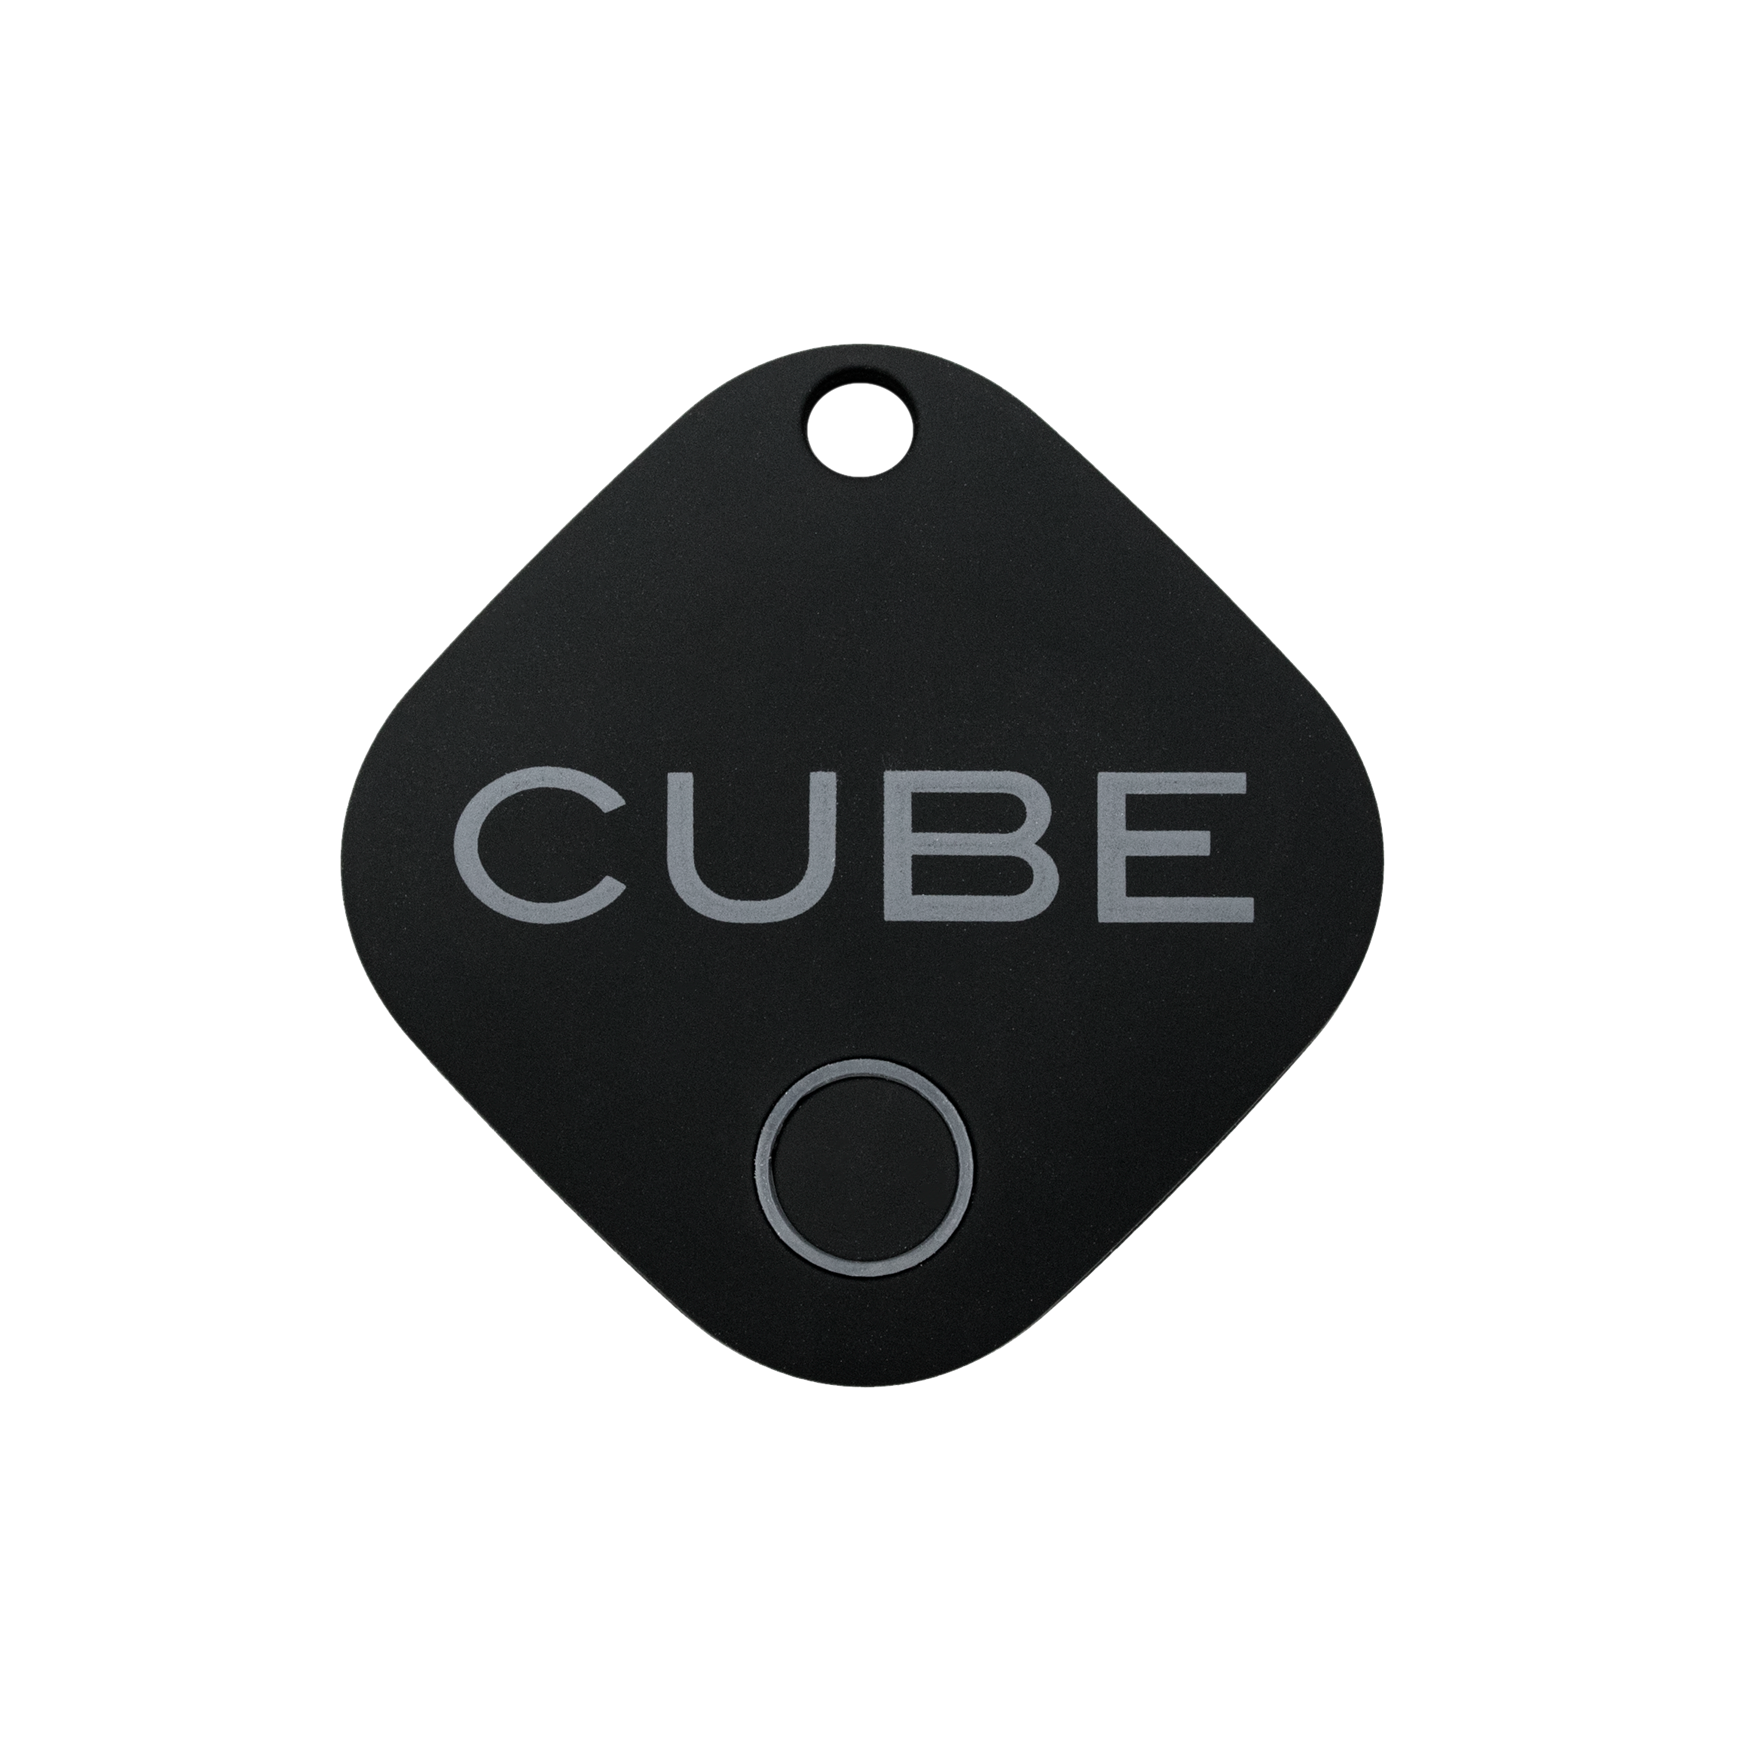 Cube - Our original model features a matte rubber coated design.